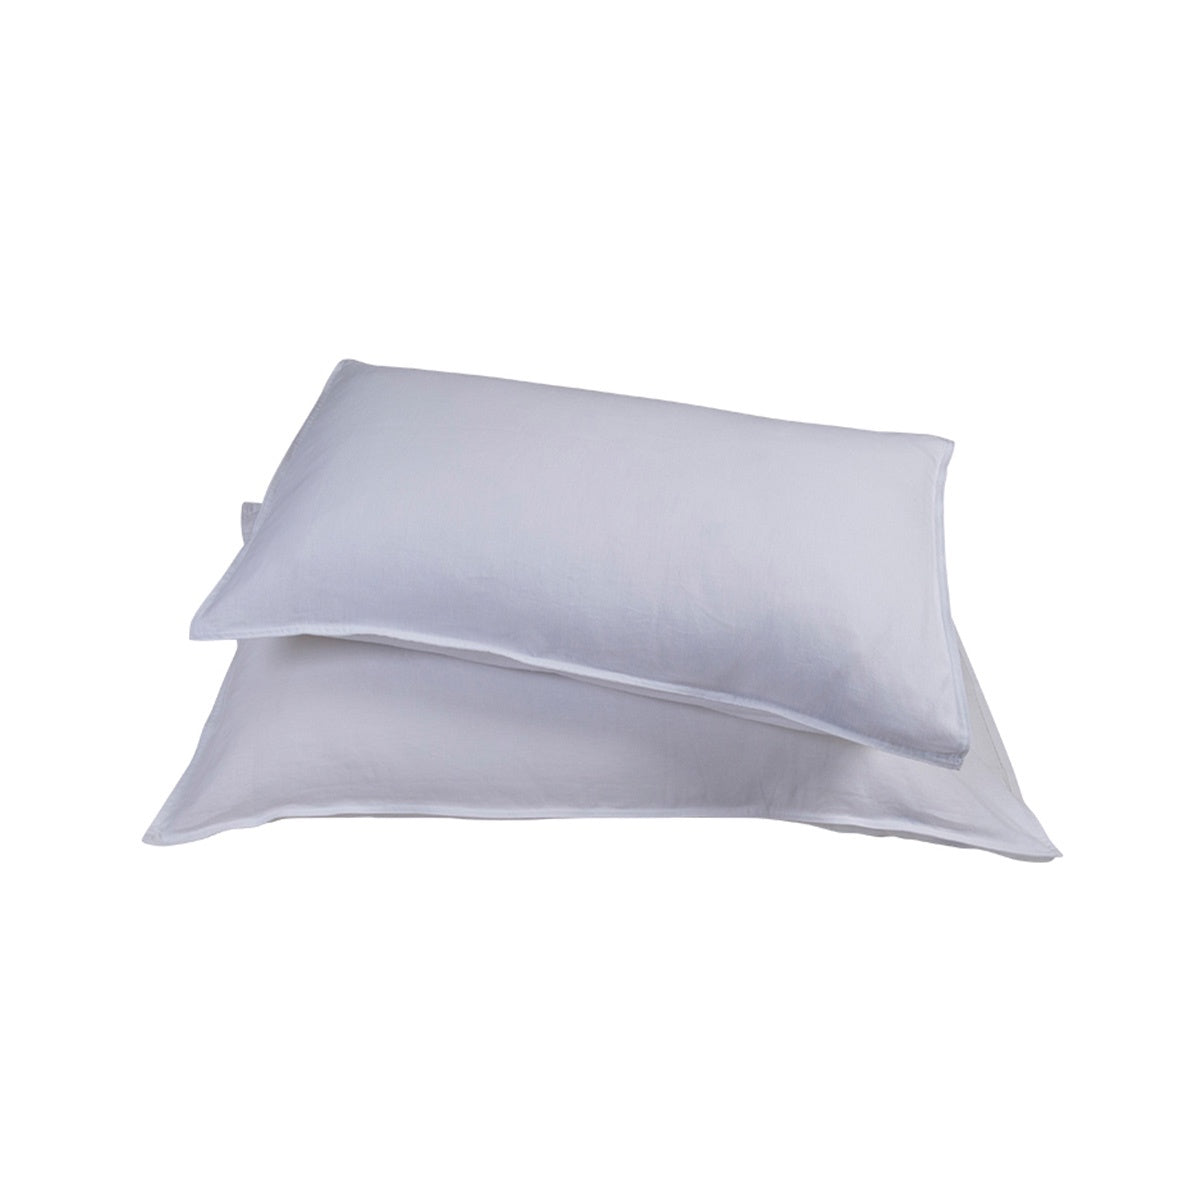 Standard Pillowcase set- Set of 2